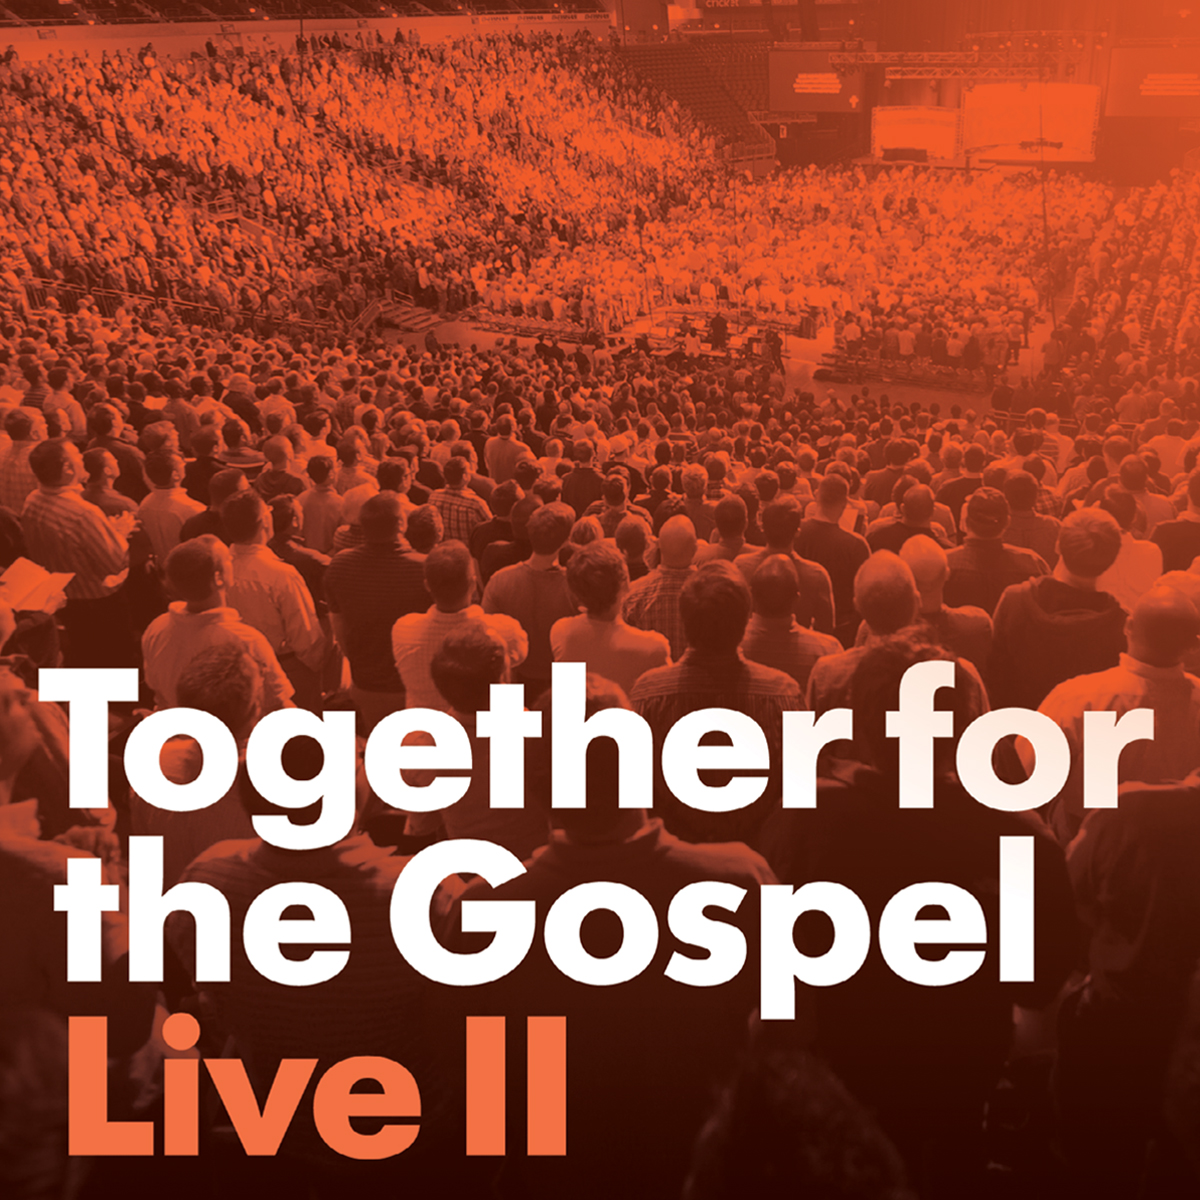 Together for the Gospel-Live II